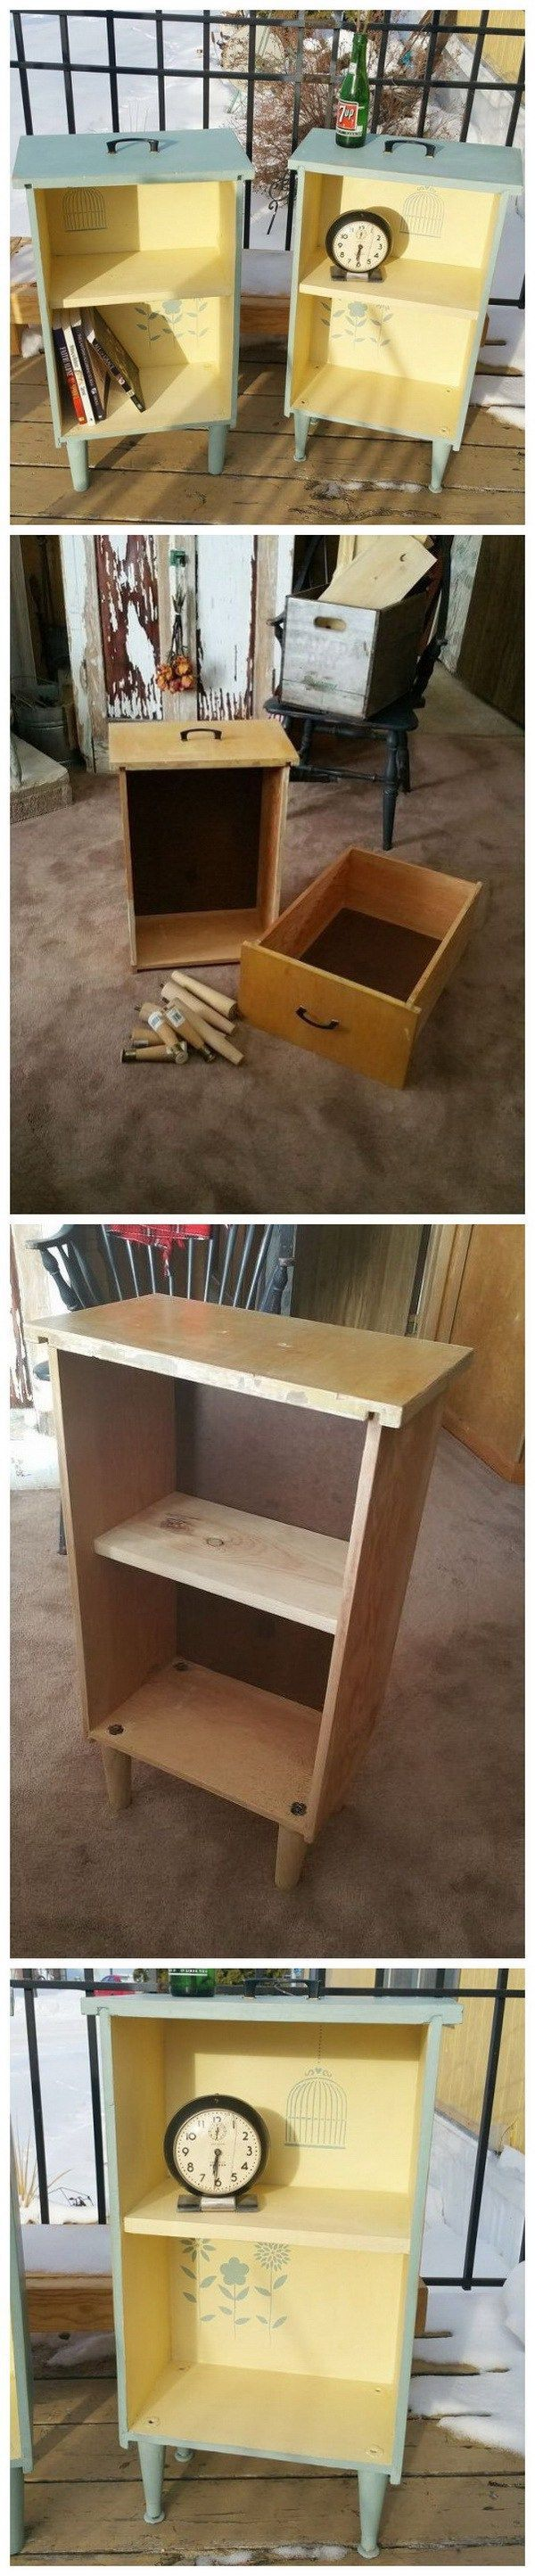 Upcycled Drawers To Side Tables: Get Some Old Drawers And Turned Them Into  Bright Side